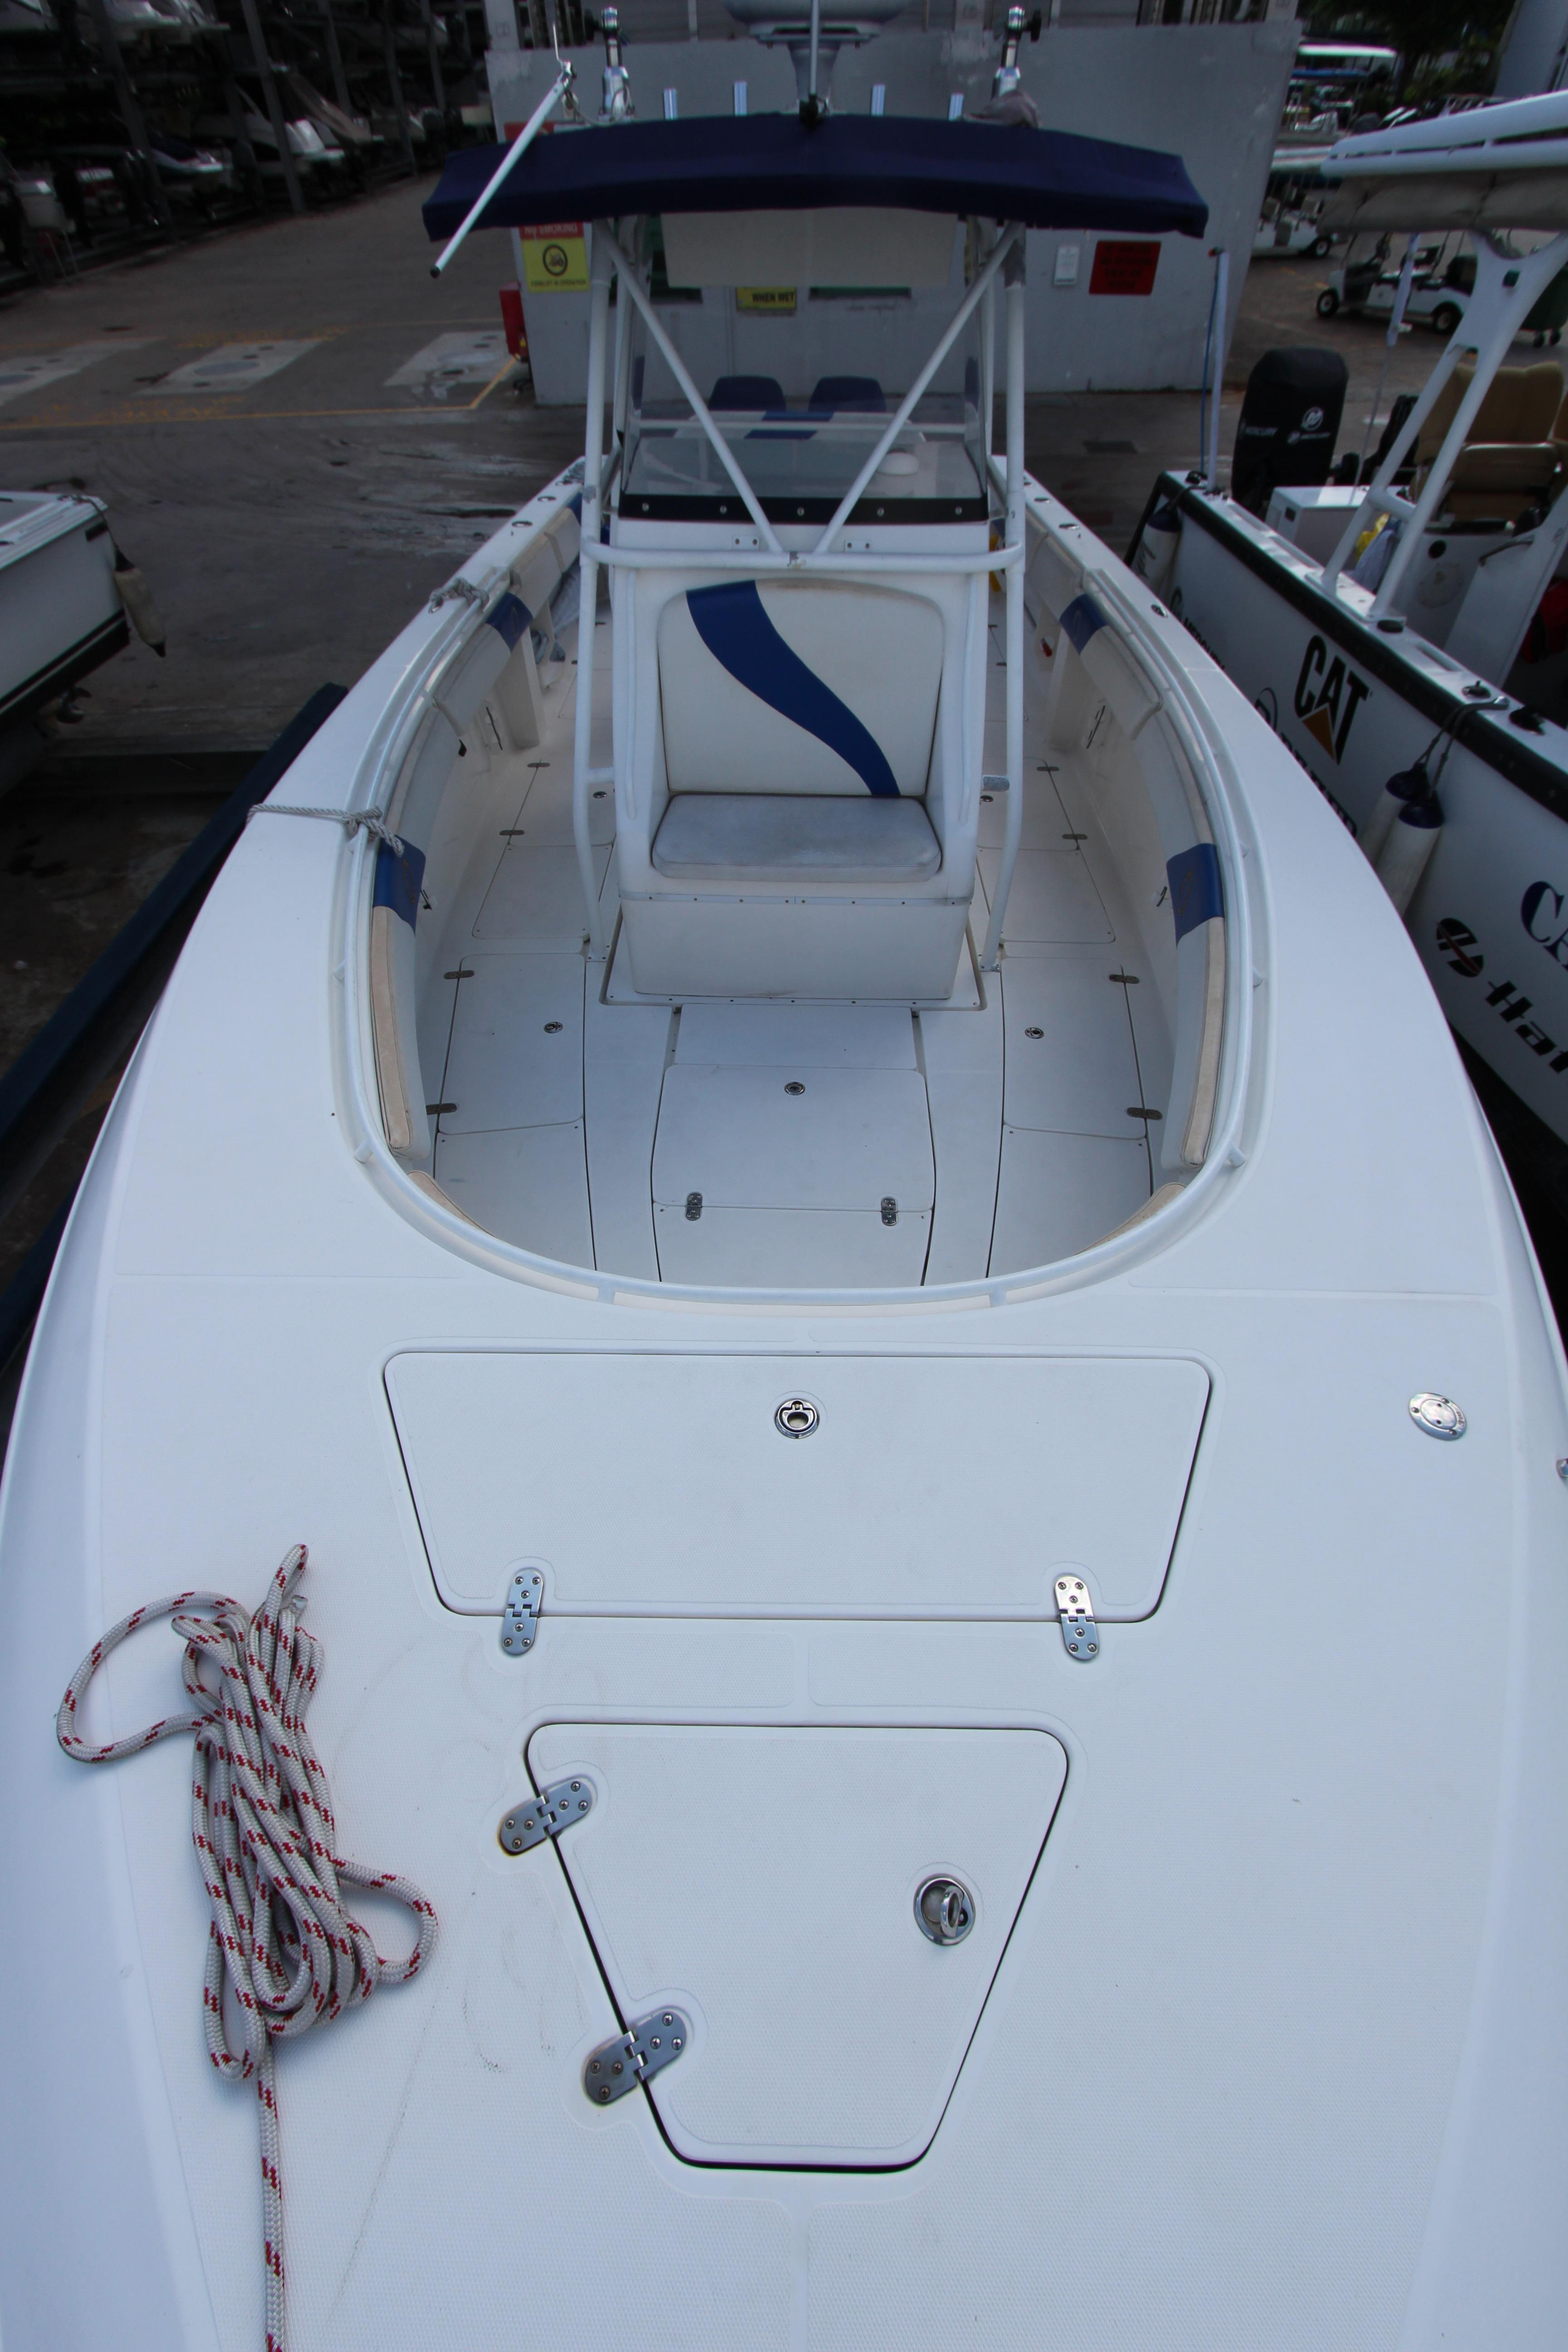 Bow looking aft